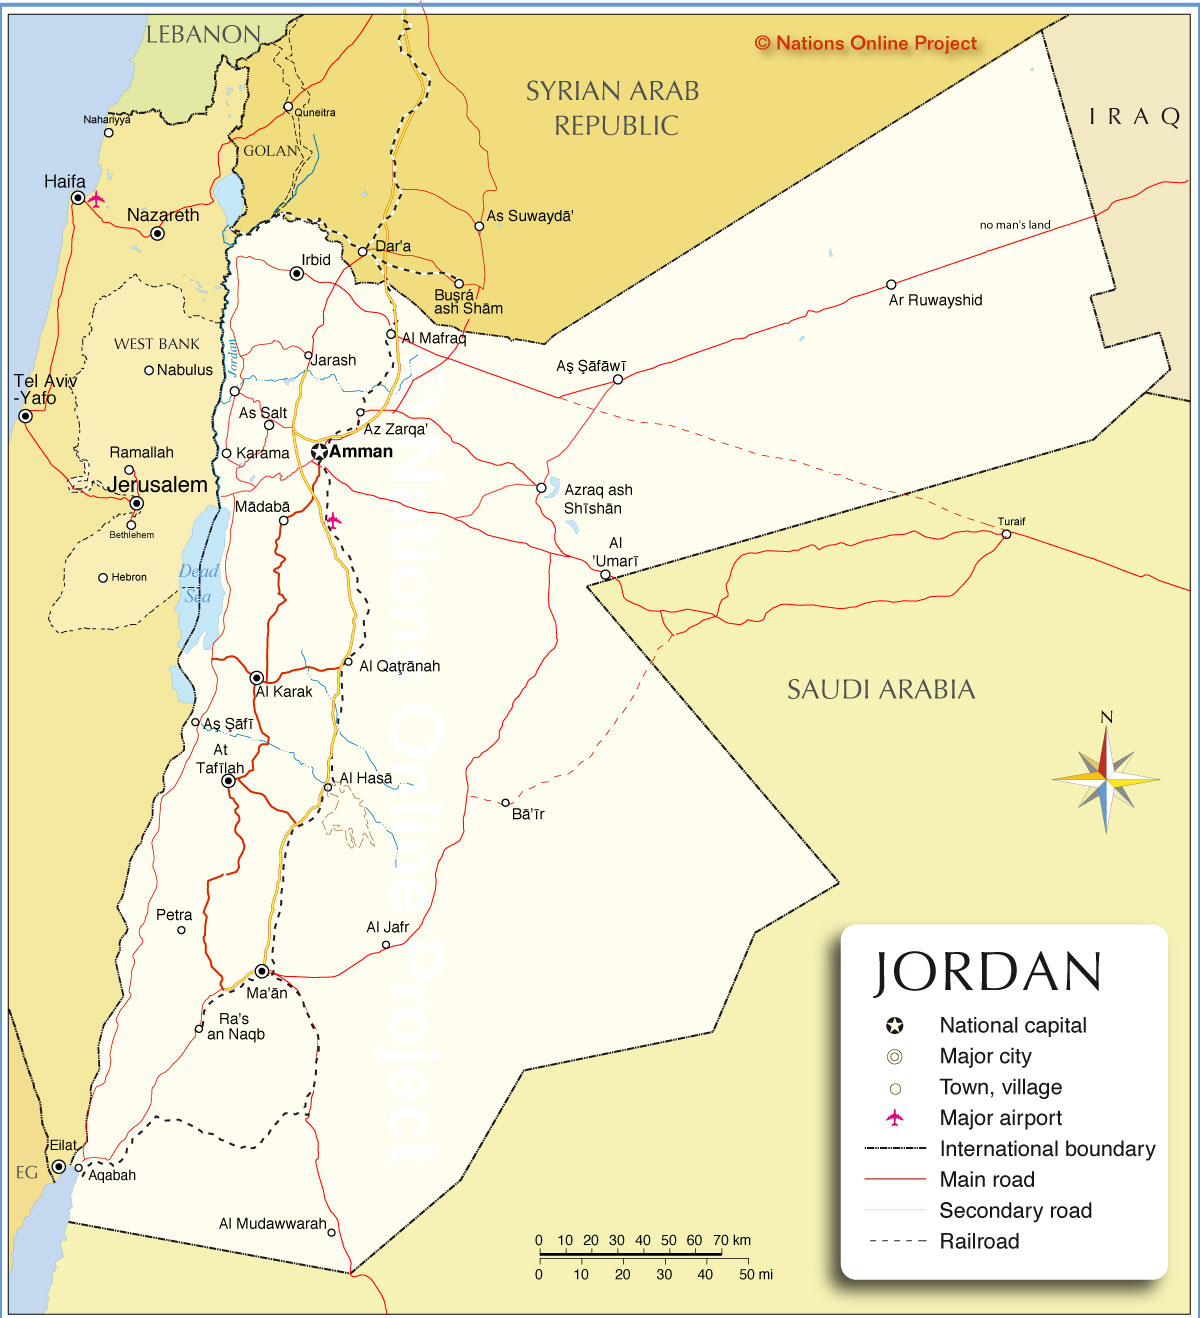 Jordan Participatory Local Democracy